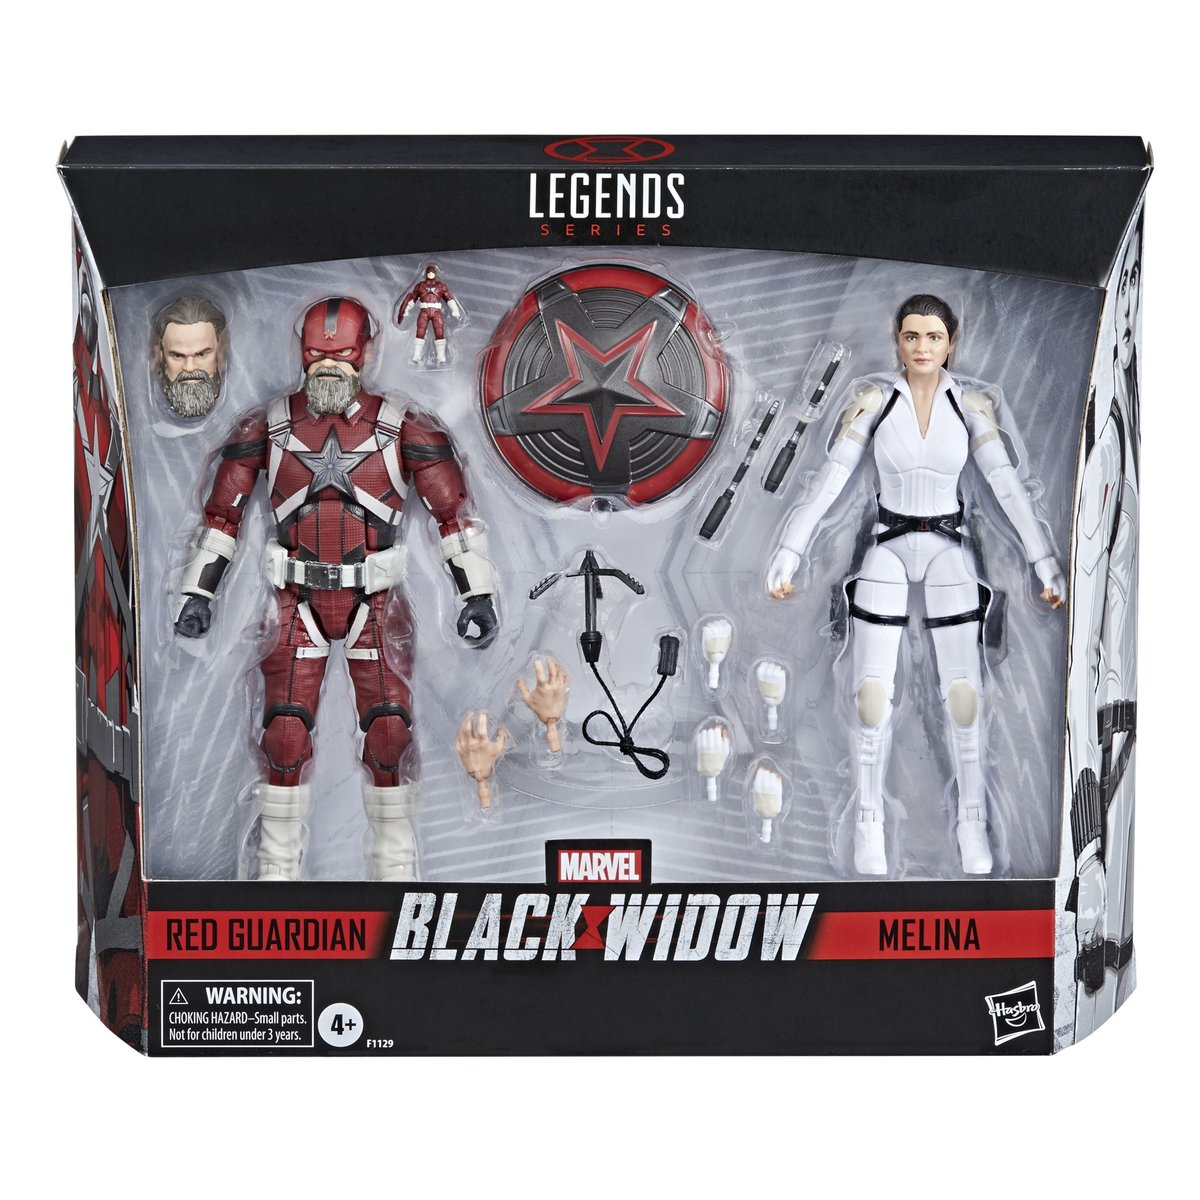 New Pre-Order!!! RED GUARDIAN AND MELINA VOSTKOFF - Marvel Legends Black Widow 6-Inch Action Figure 2-pack    CODE: PREORDERNOW for 10% OFF  #poopoopanda #marvellegends #actionfigures #marveluniverse #blackwidow